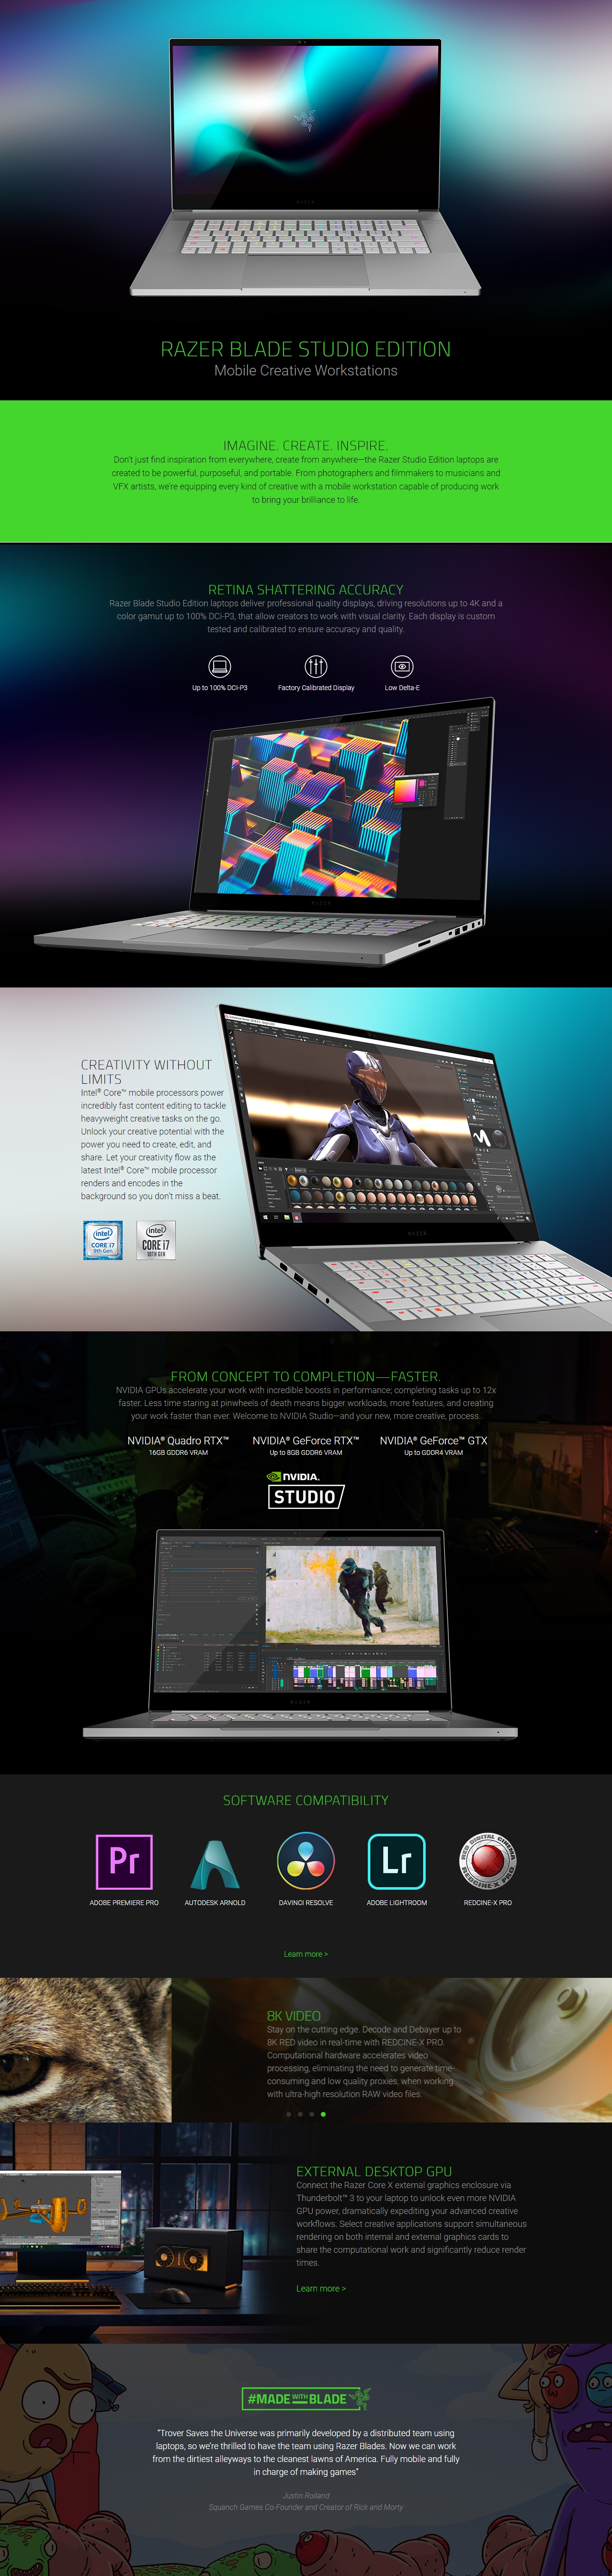 "A large marketing image providing additional information about the product Razer Blade 15 Studio Edition 15.6"" RTX 5000 Windows 10 Pro Notebook - Additional alt info not provided"